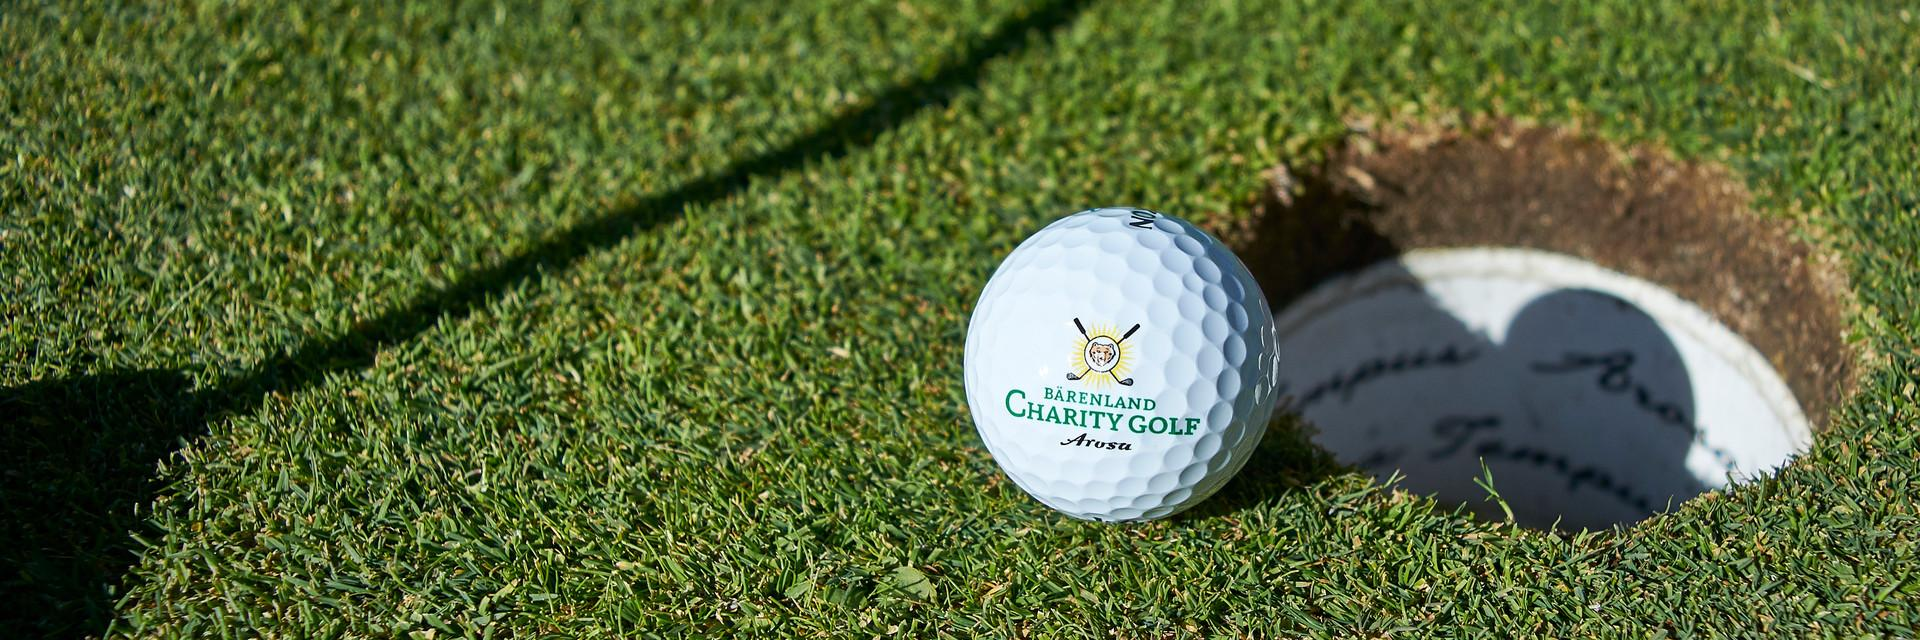 Bärenland Charity Golf